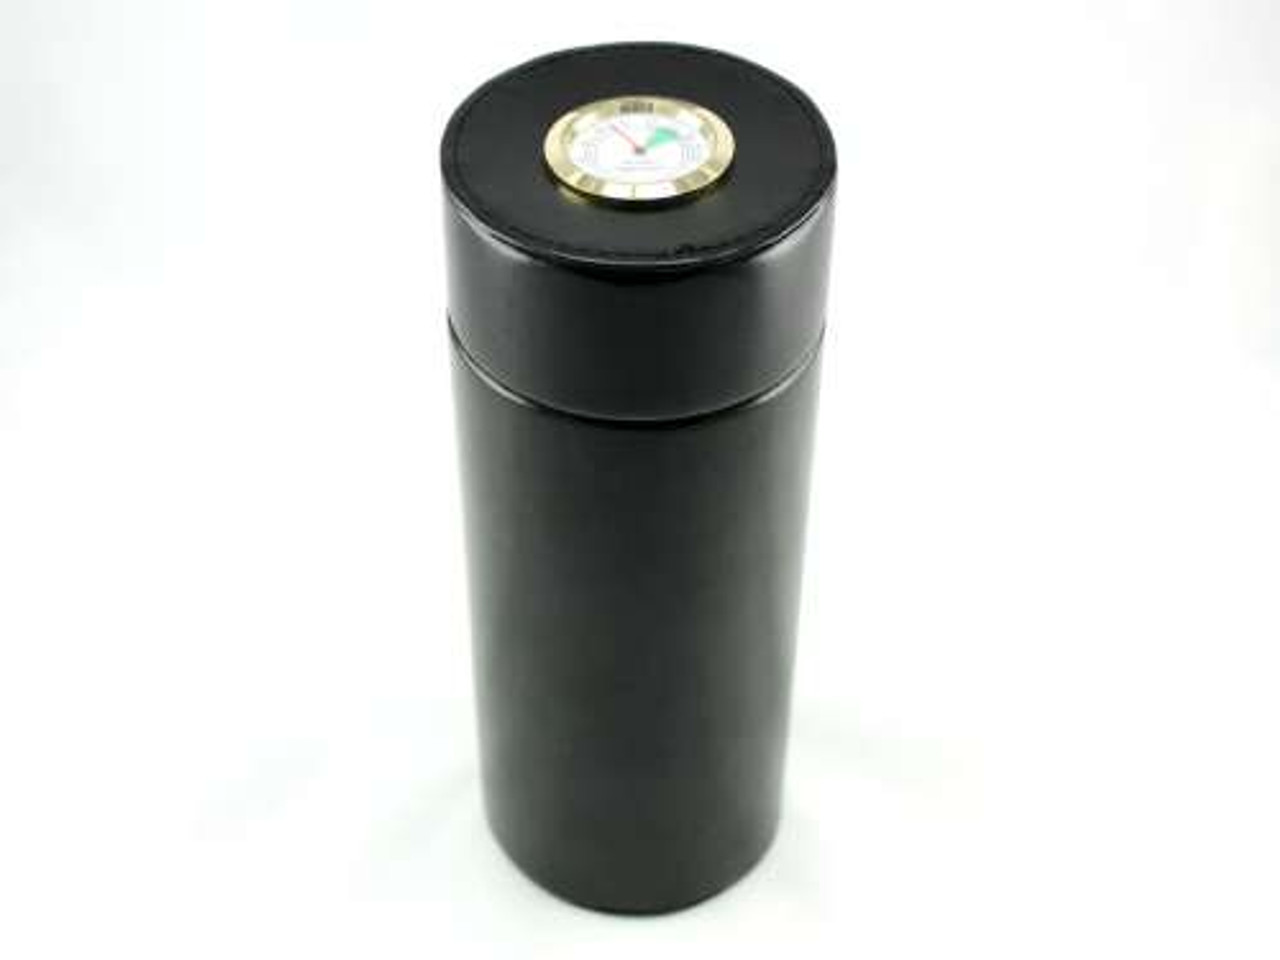 Black Infinity Cigar Tube with Hygrometer and Humidifier